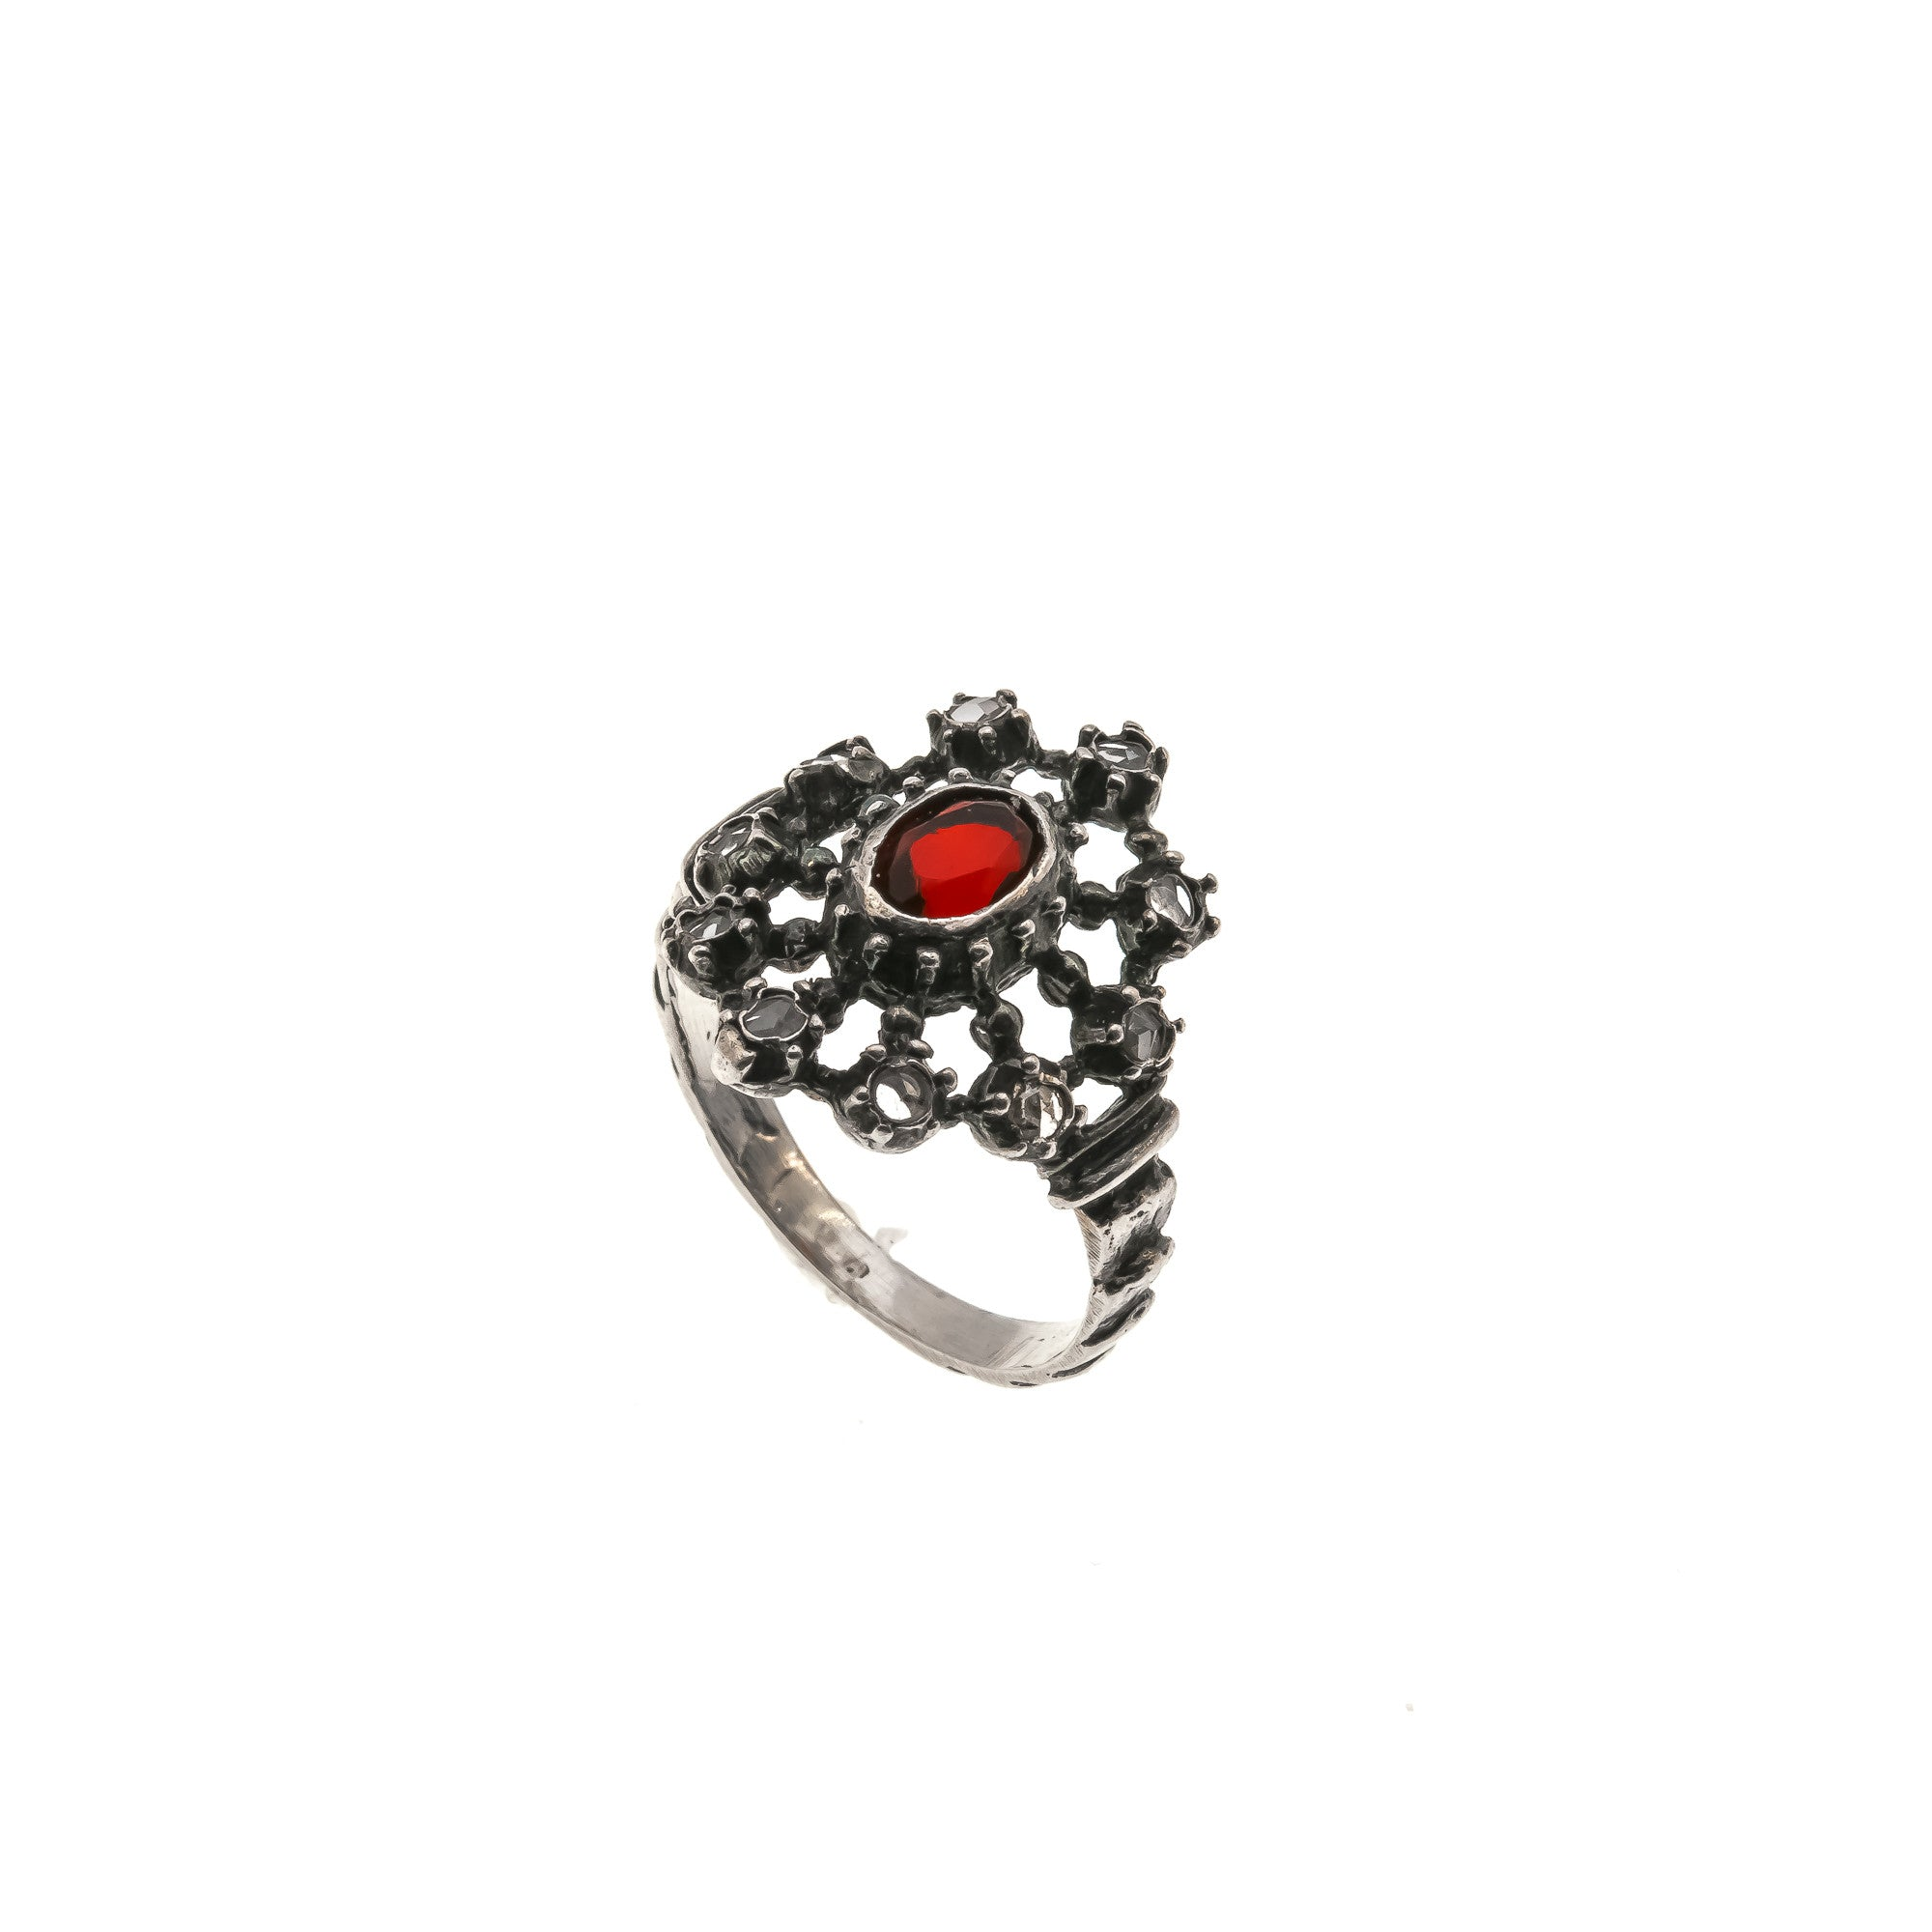 sterling overstock shipping watches product romantic orders jewelry free diamond over traditional on garnet india silver handmade ring